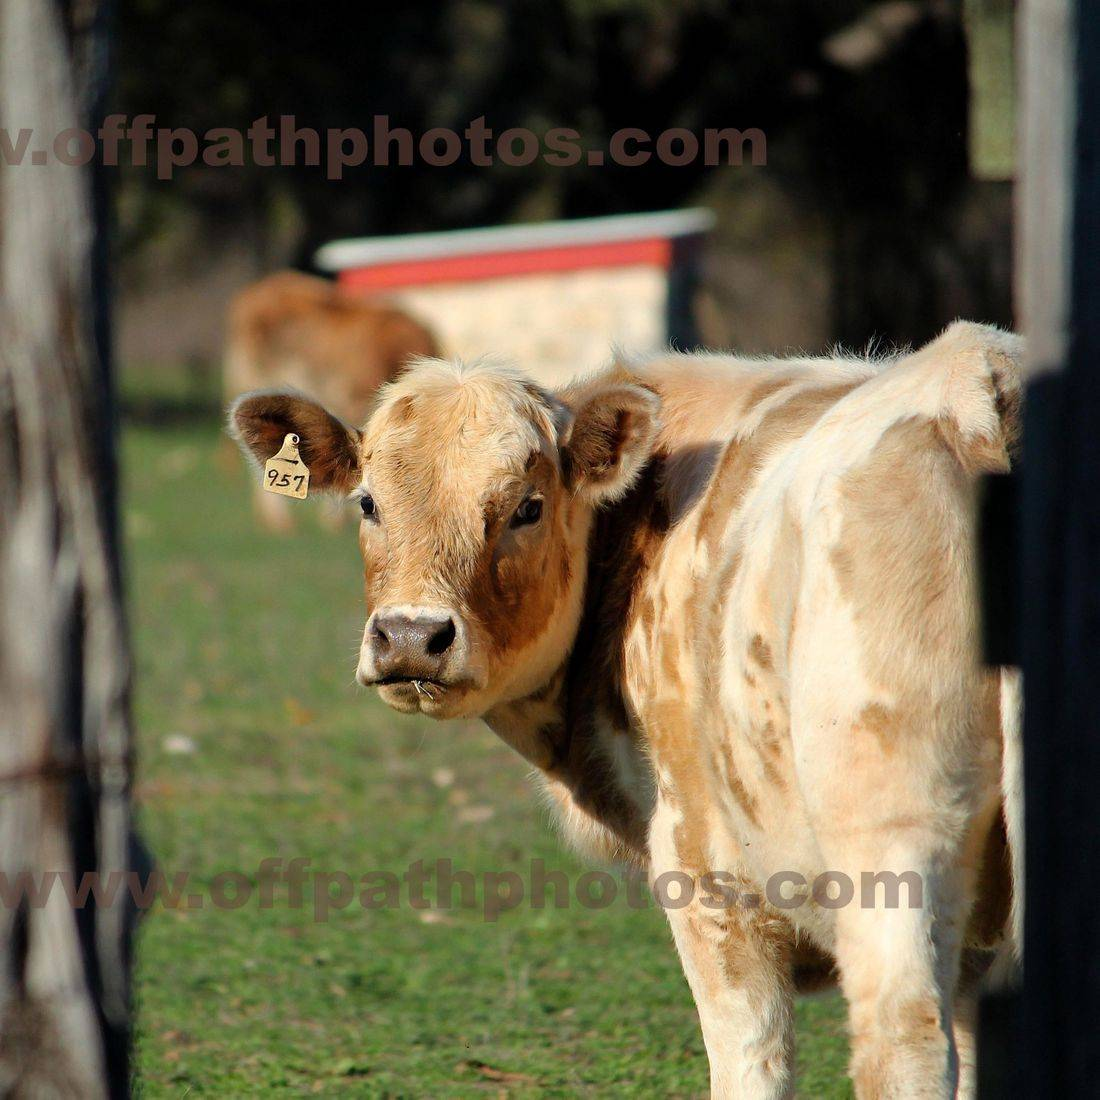 photography, animals, farm, country, cows, pasture, calf, bad day